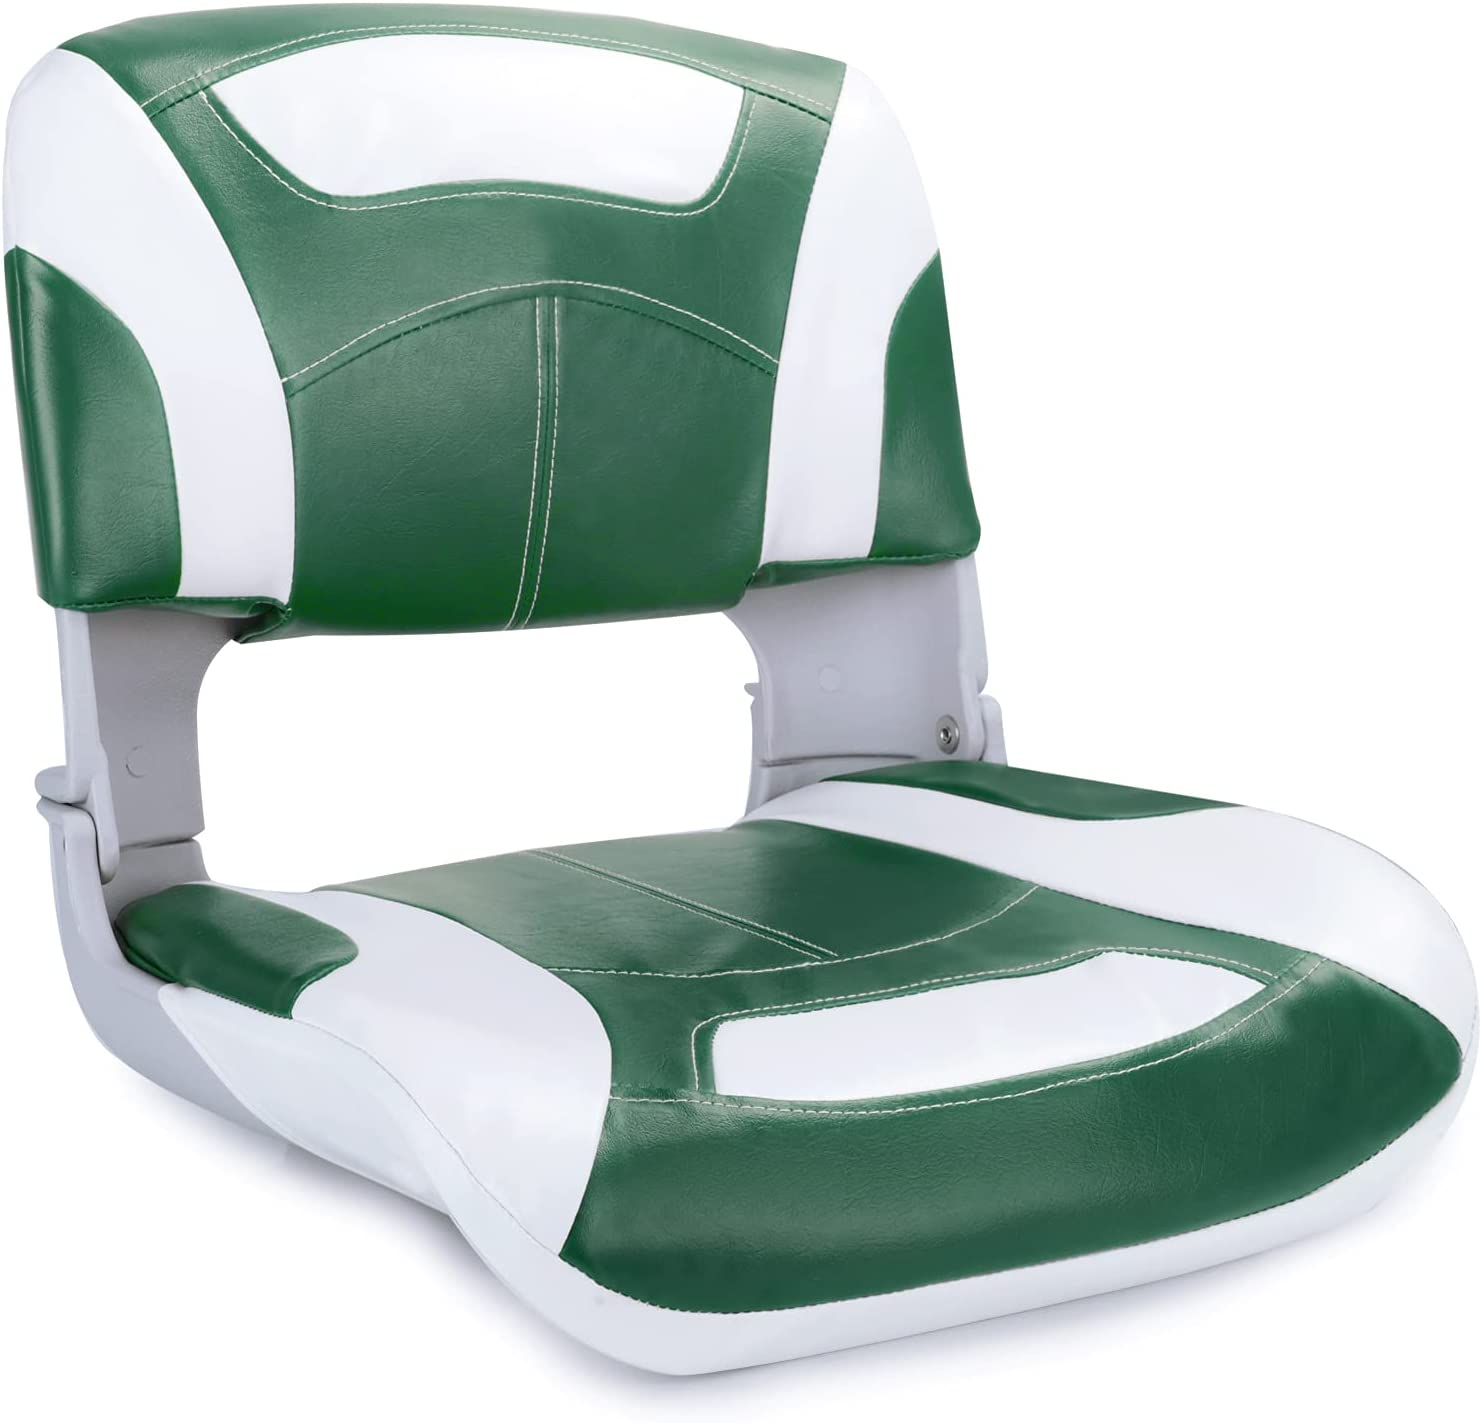 Recommended NORTHCAPTAIN Arlington Mall Marine Low Back Seat Boat Folding